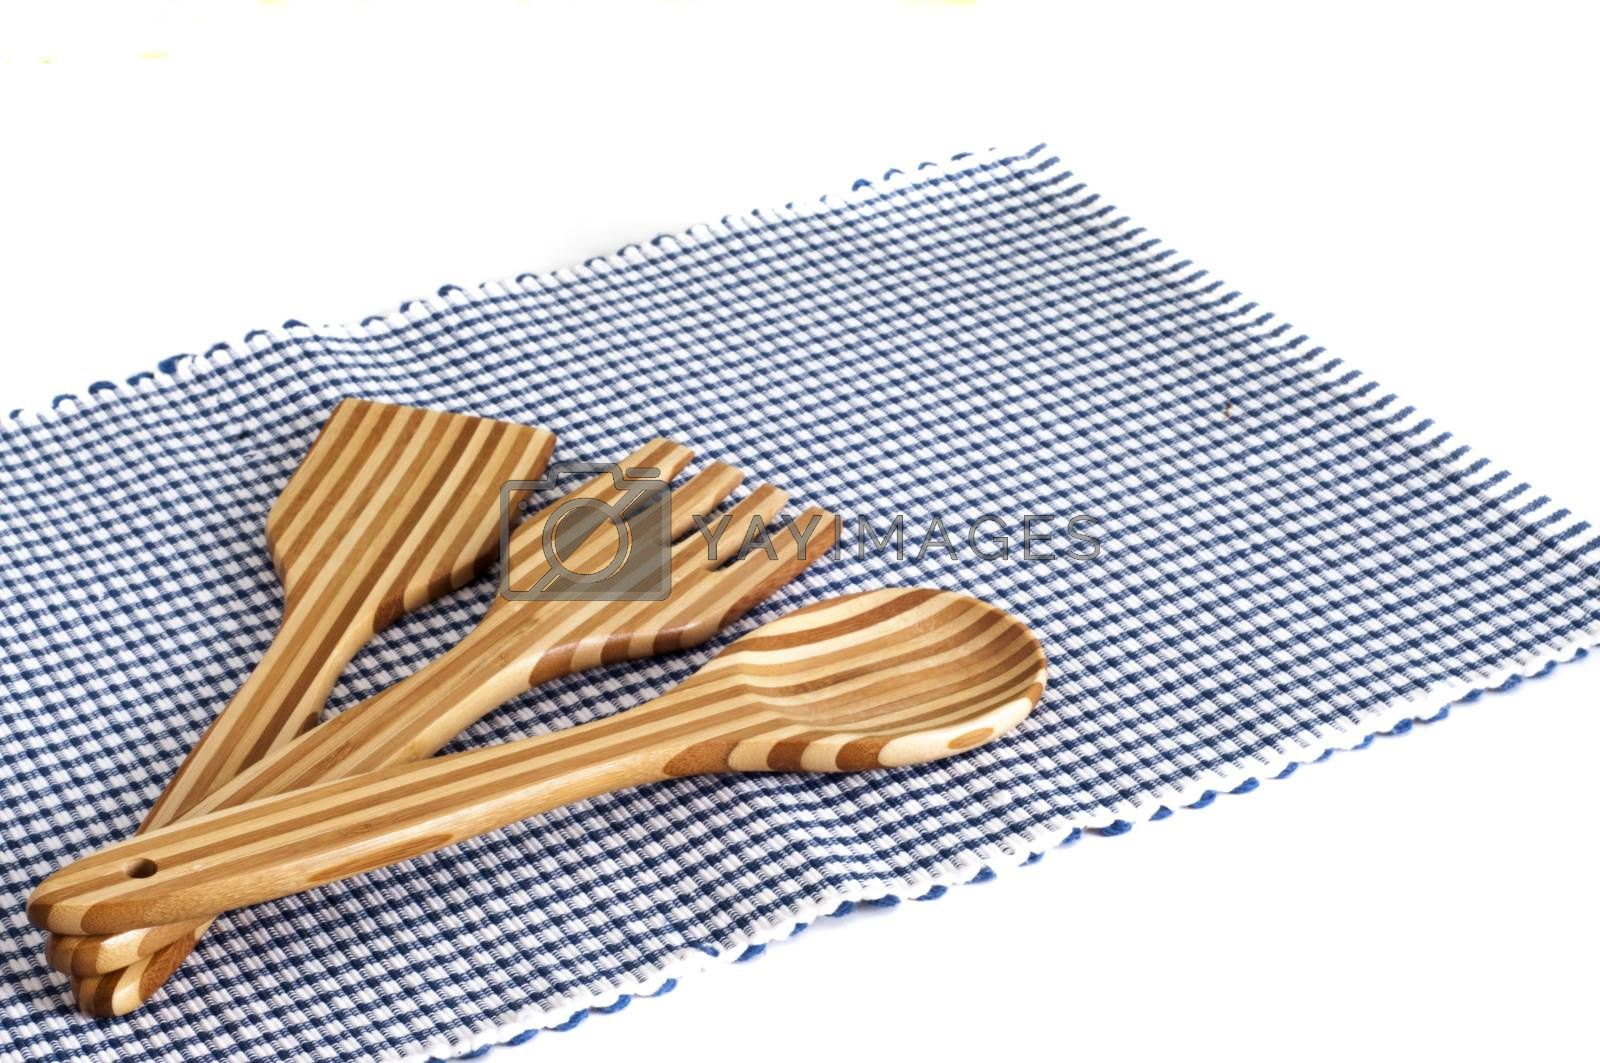 tablecloths and cutlery in bamboo by carla720